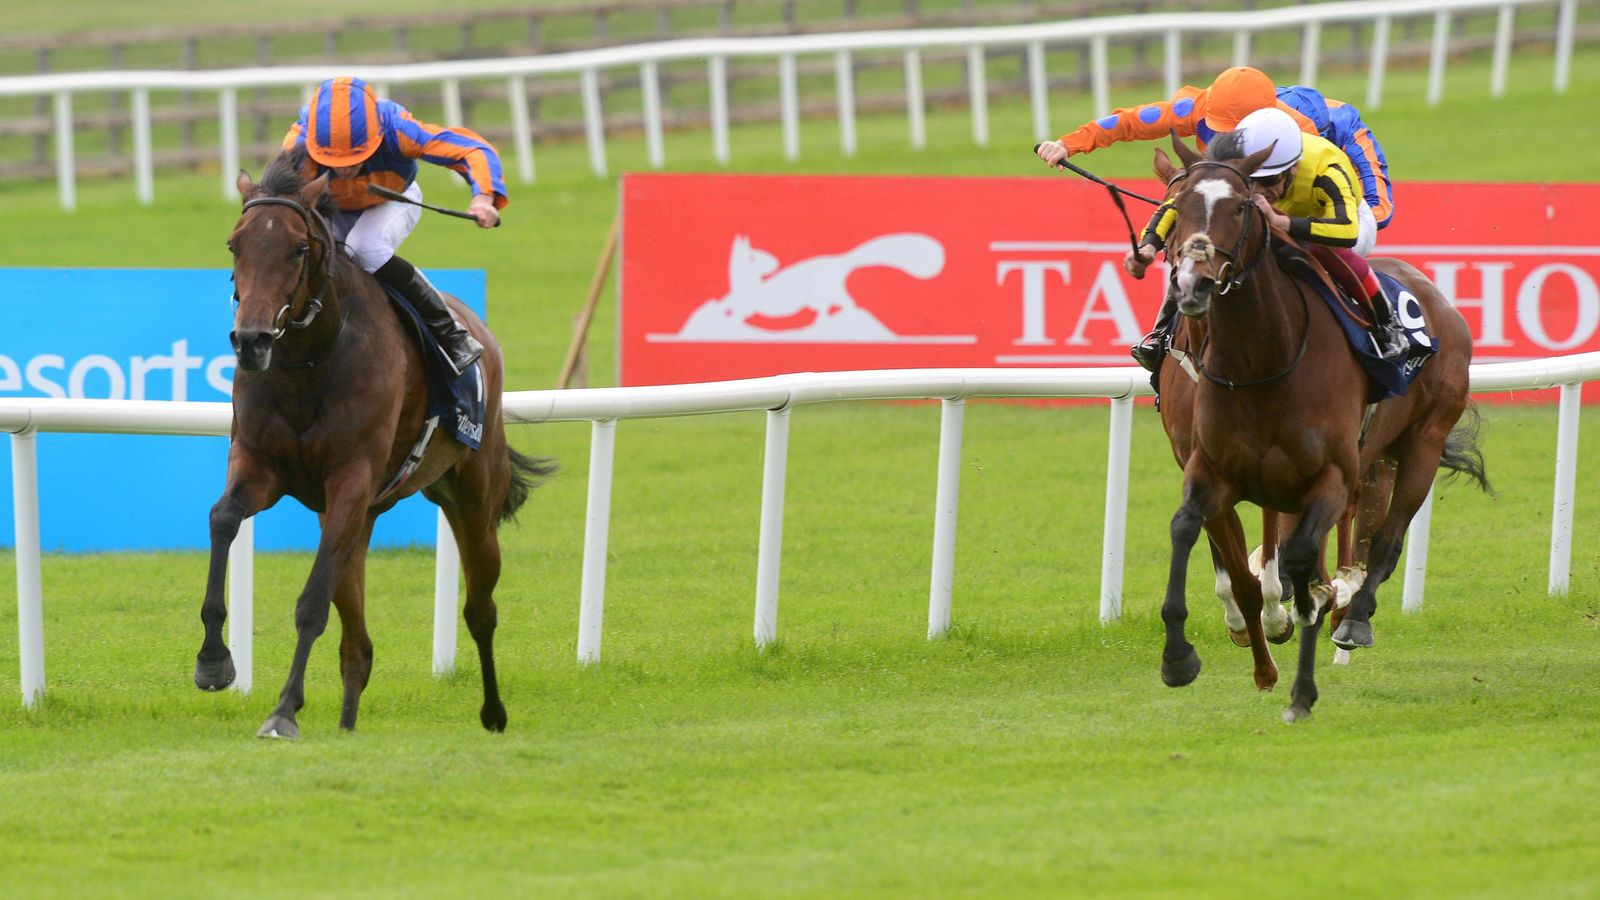 Coronation stakes betting trends aiding and abetting a fugitive punishment synonym